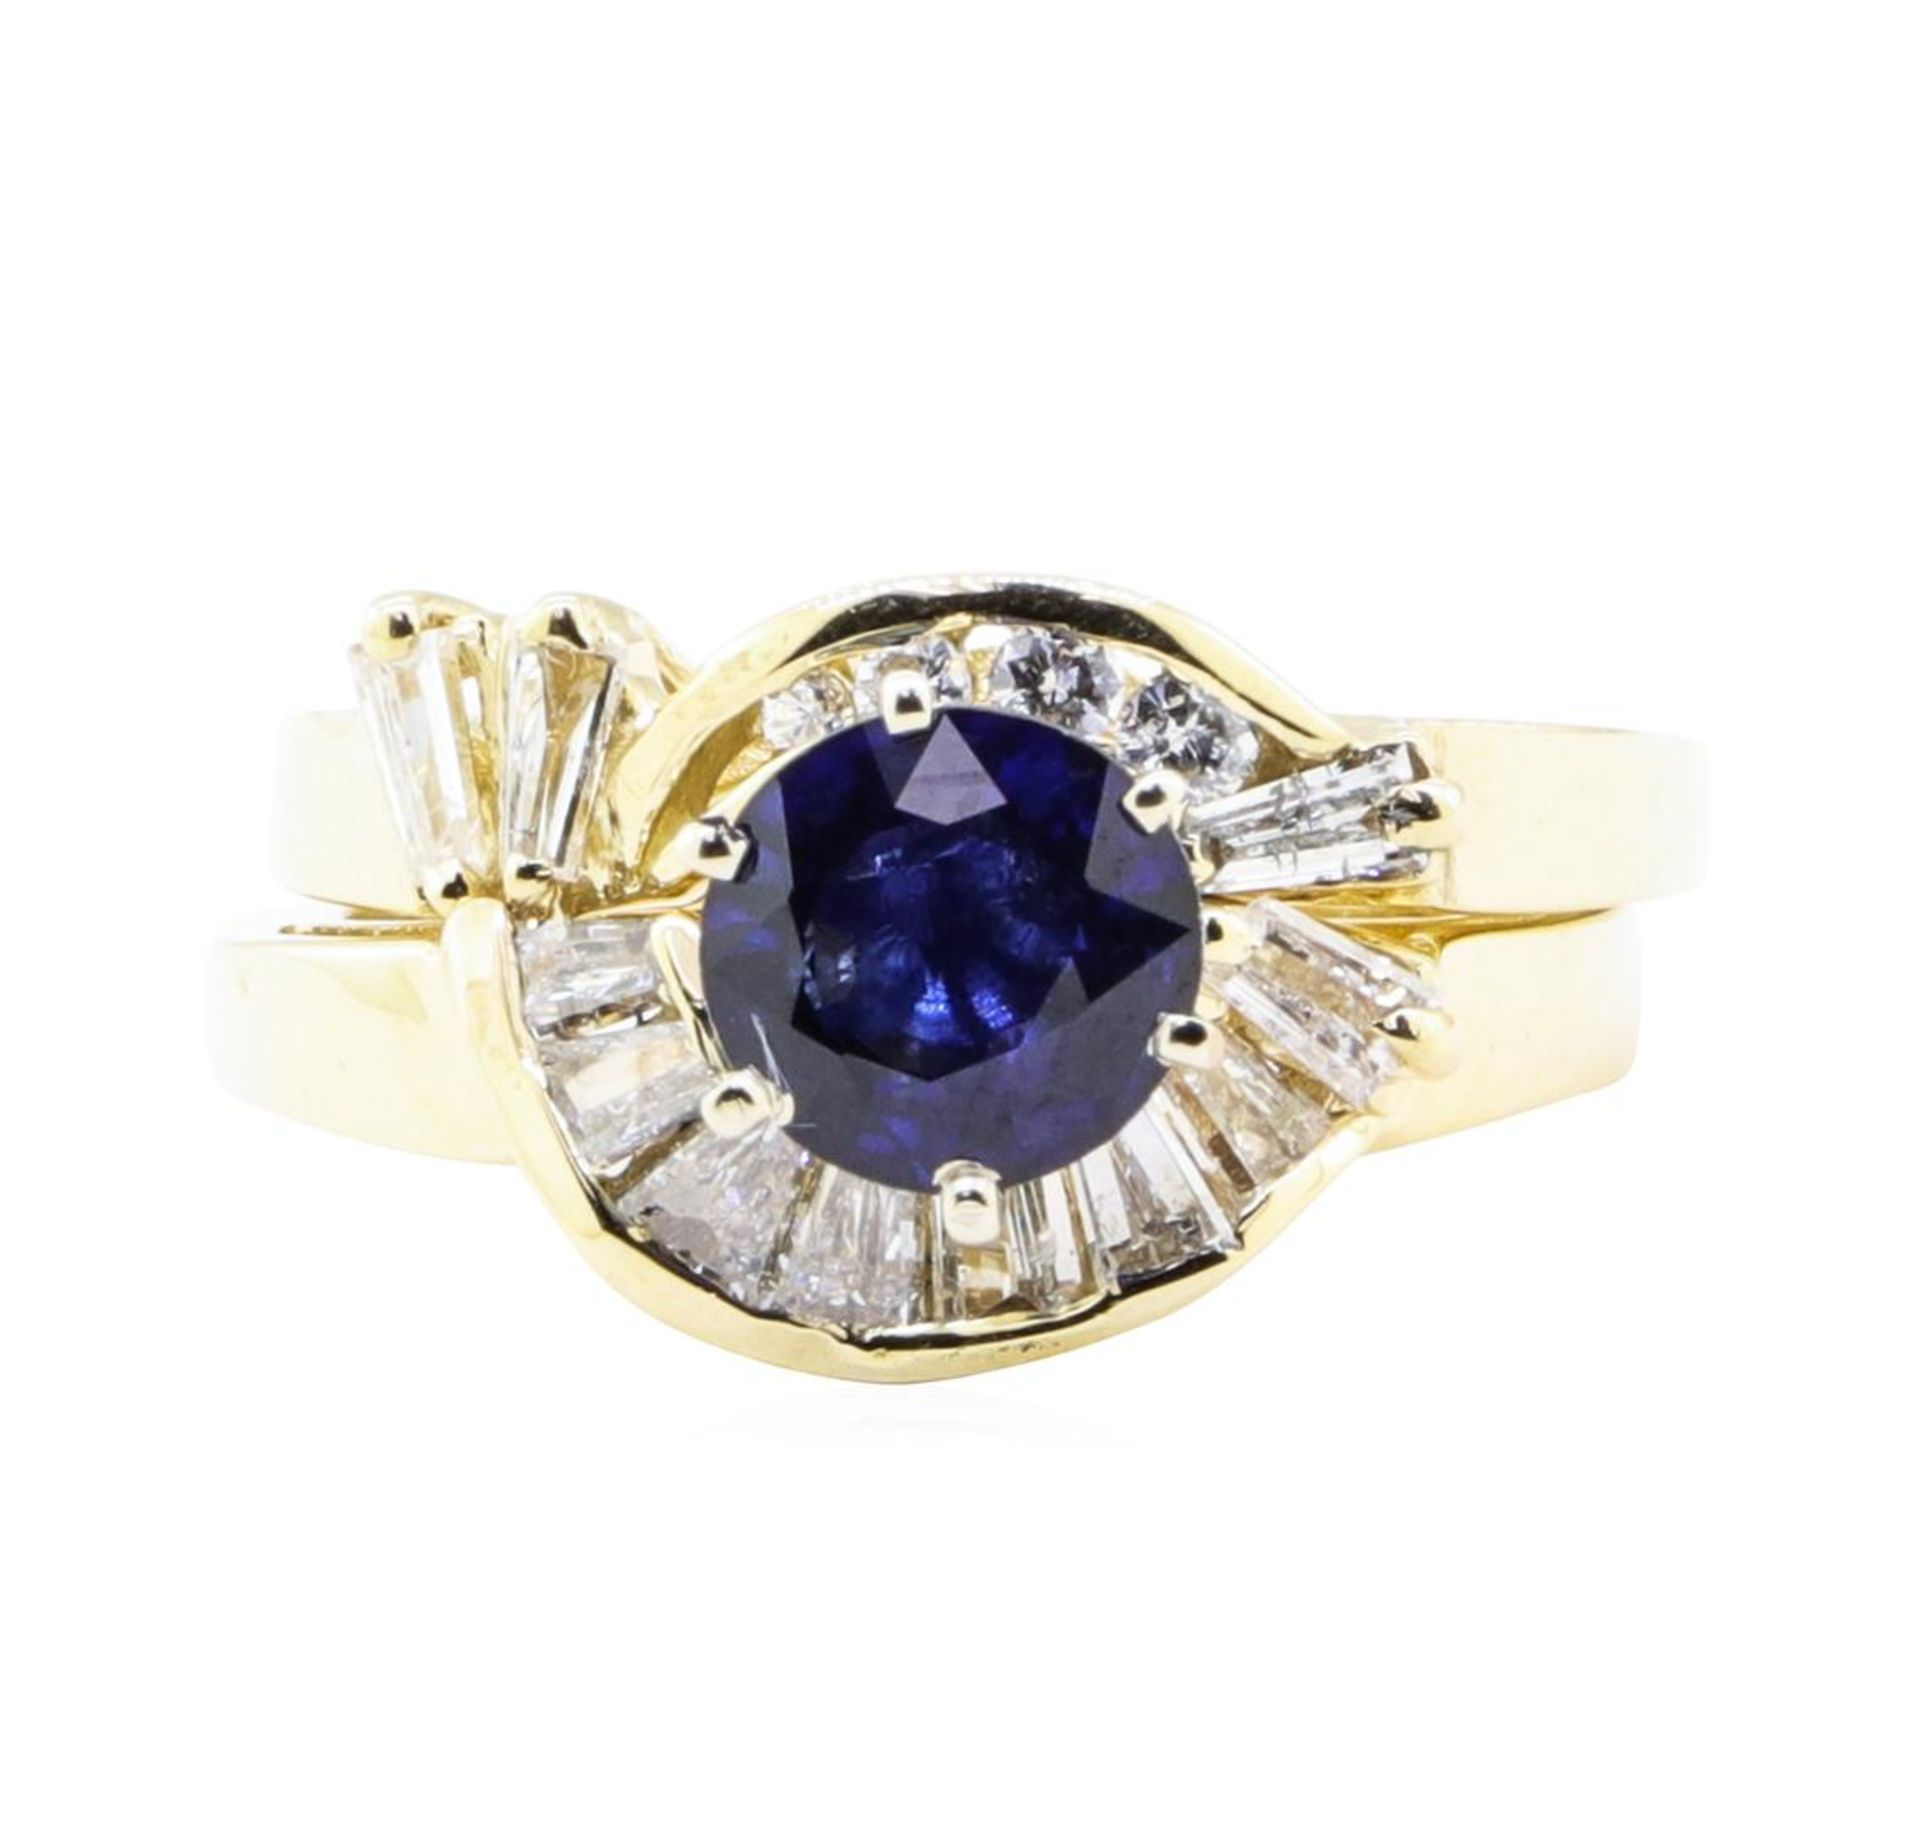 1.83 ctw Sapphire And Diamond Ring And Band - 14KT Yellow Gold - Image 2 of 4